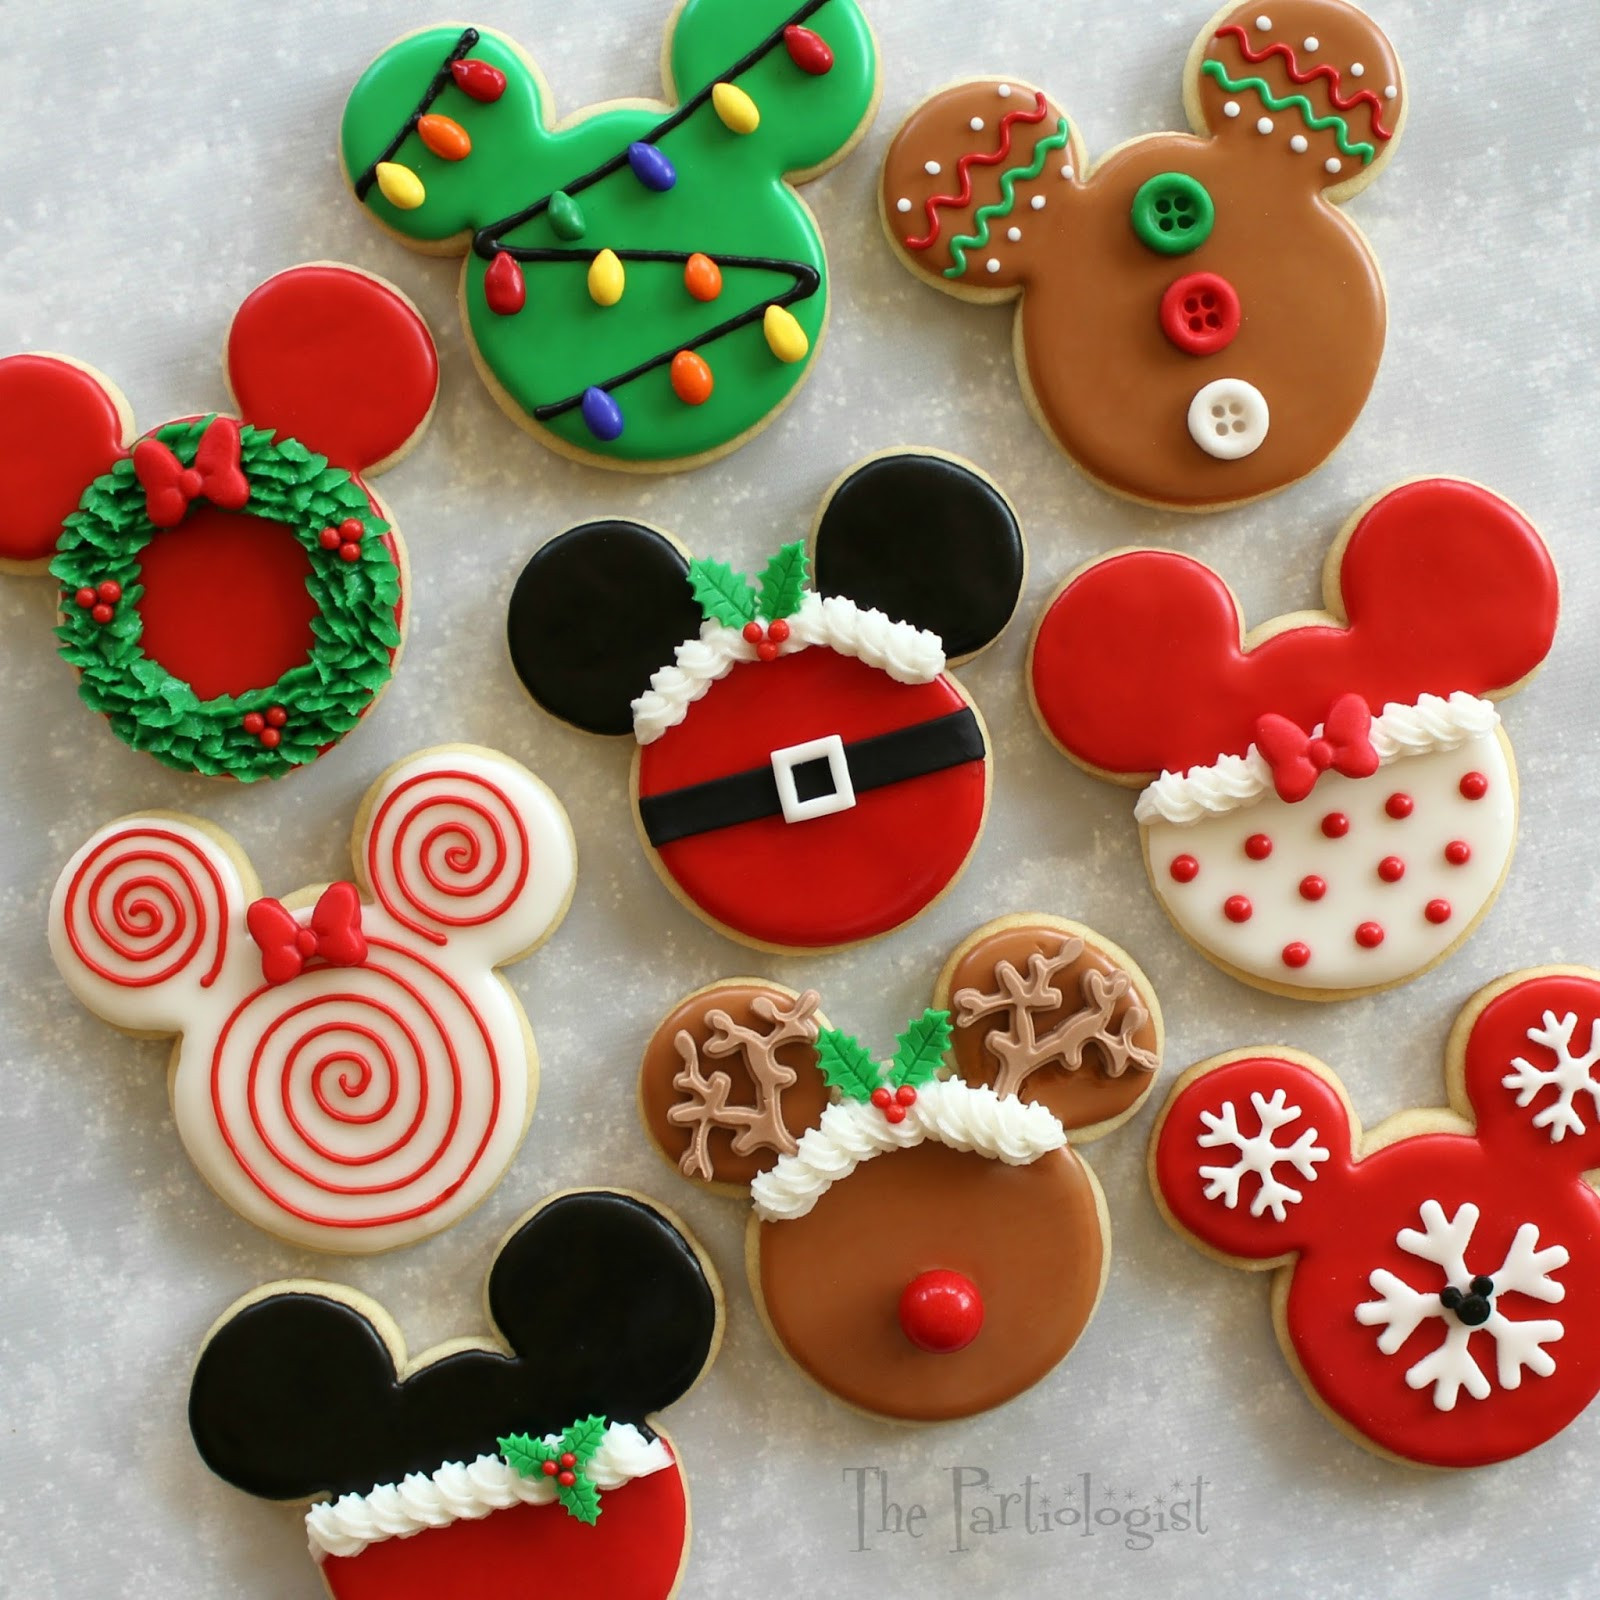 Mickey Mouse Christmas Cookies  The Partiologist Disney Themed Christmas Cookies